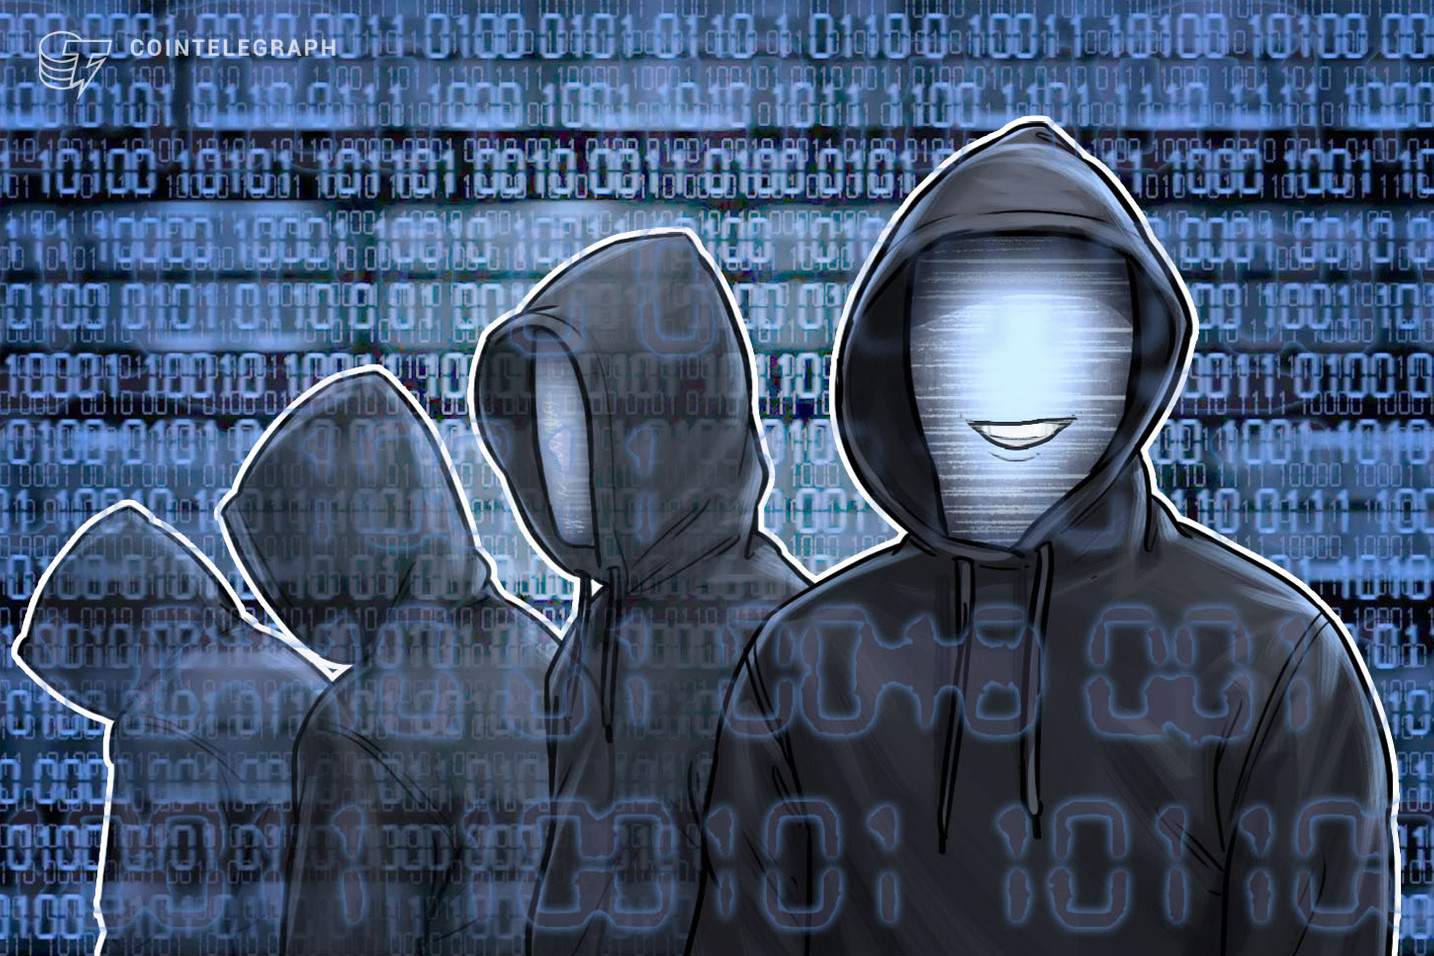 South Korea: Four 'Young' Hackers Booked in Cryptojacking Case Targeting Over 6,000 PCs